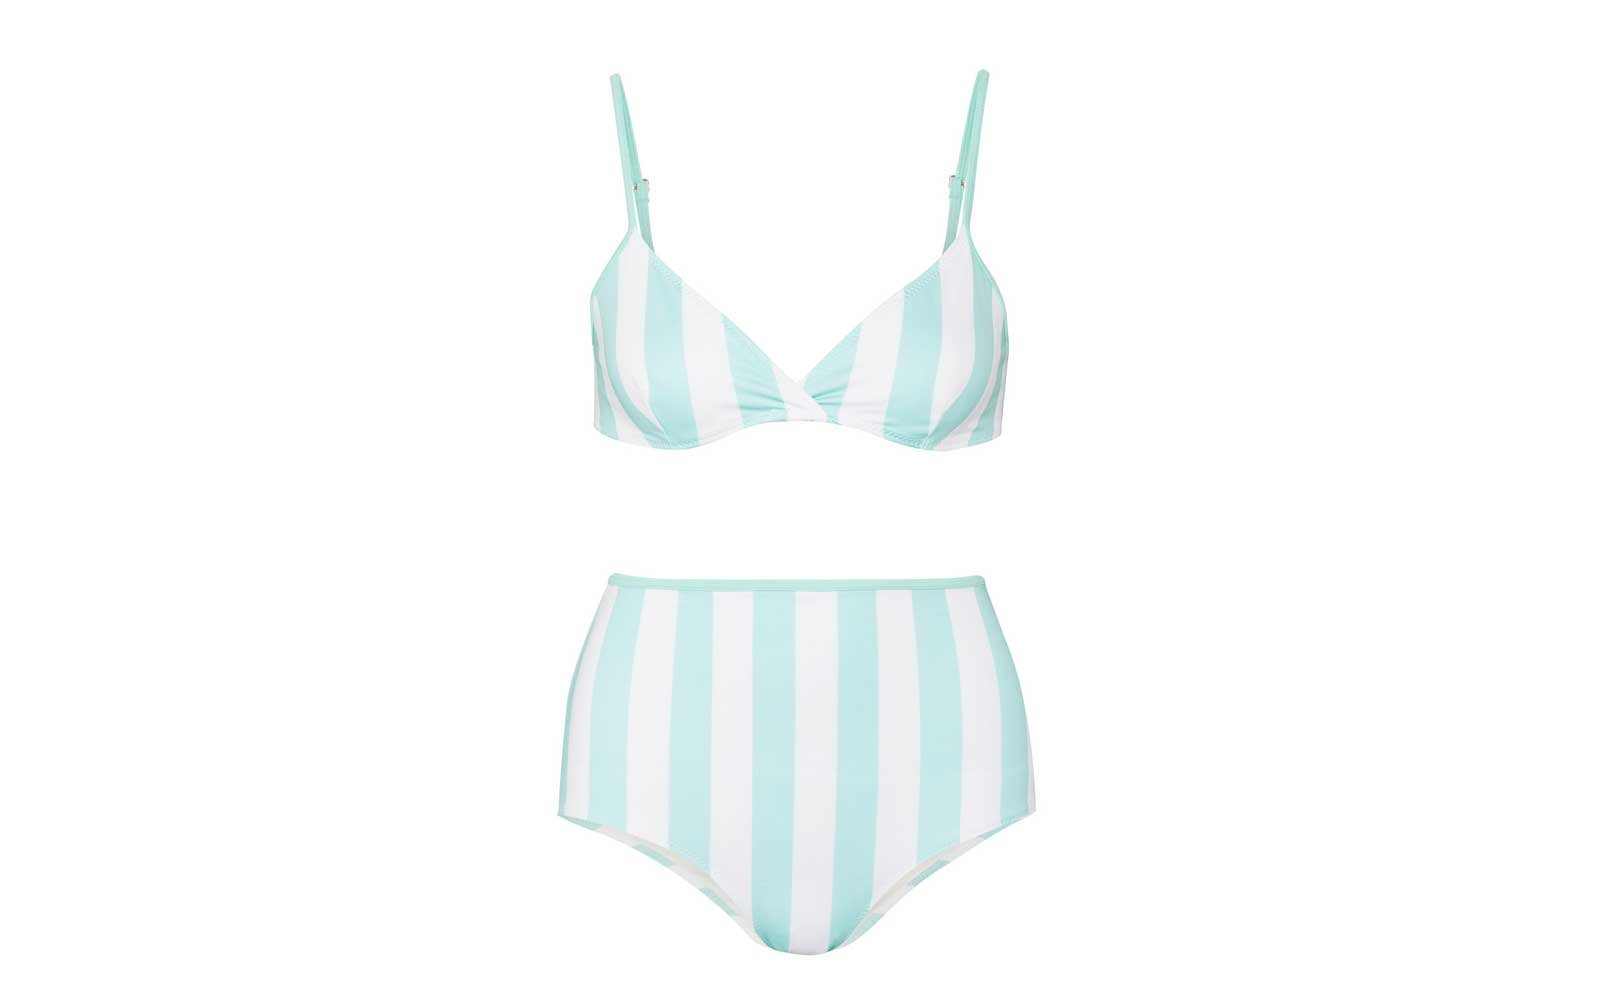 Solide and Striped High Waist Swimsuit